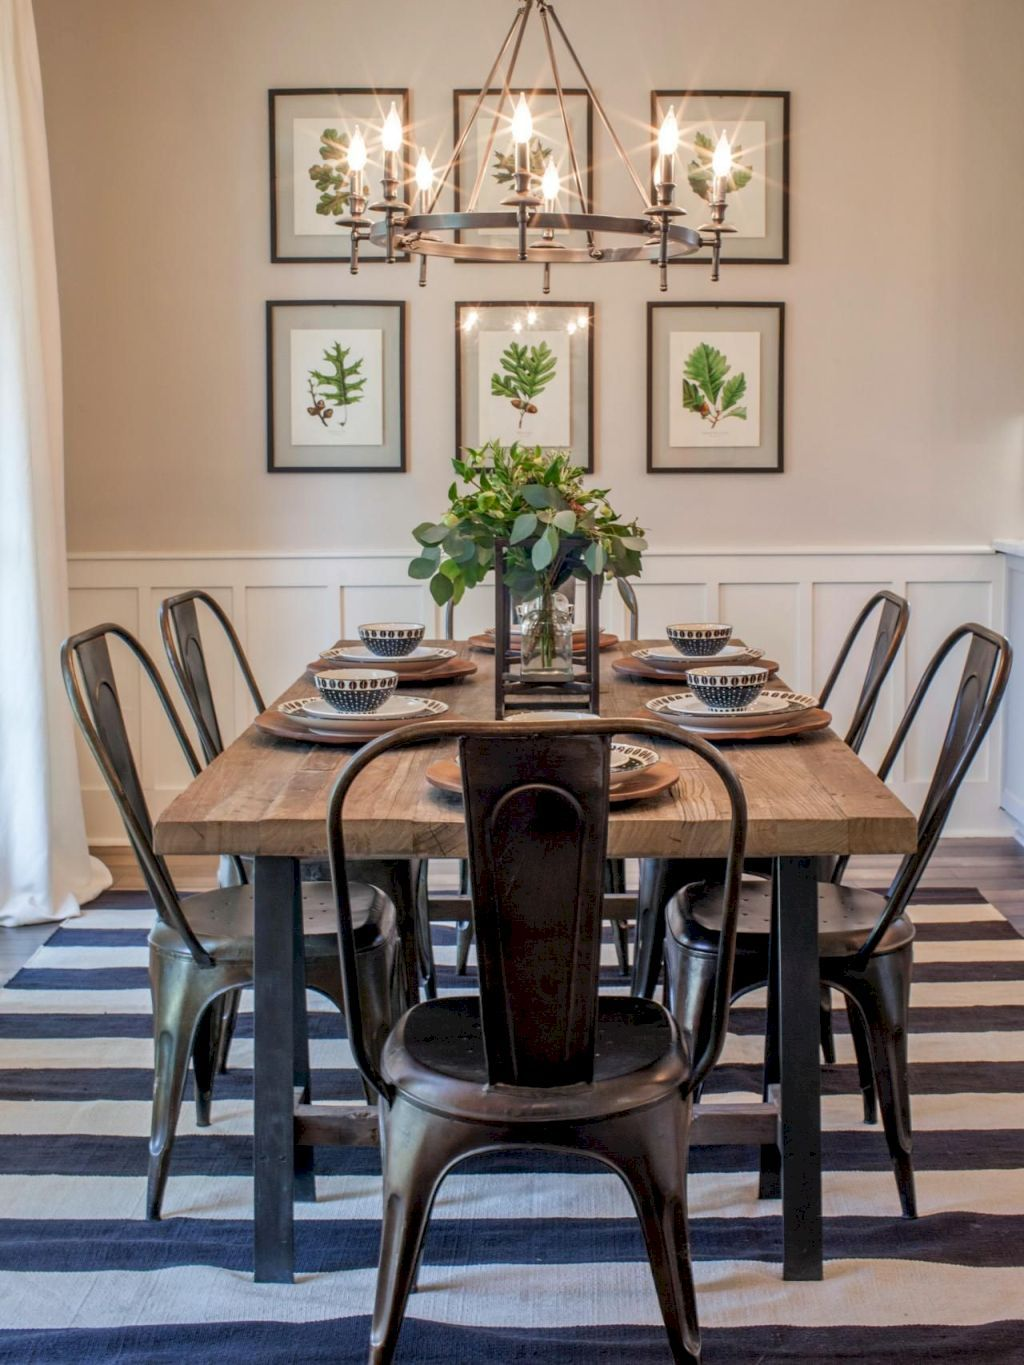 Dining Room Remodel Pictures Amusing 40 Comfy Modern Farmhouse Dining Room Remodel Ideas  Minimalist 2018